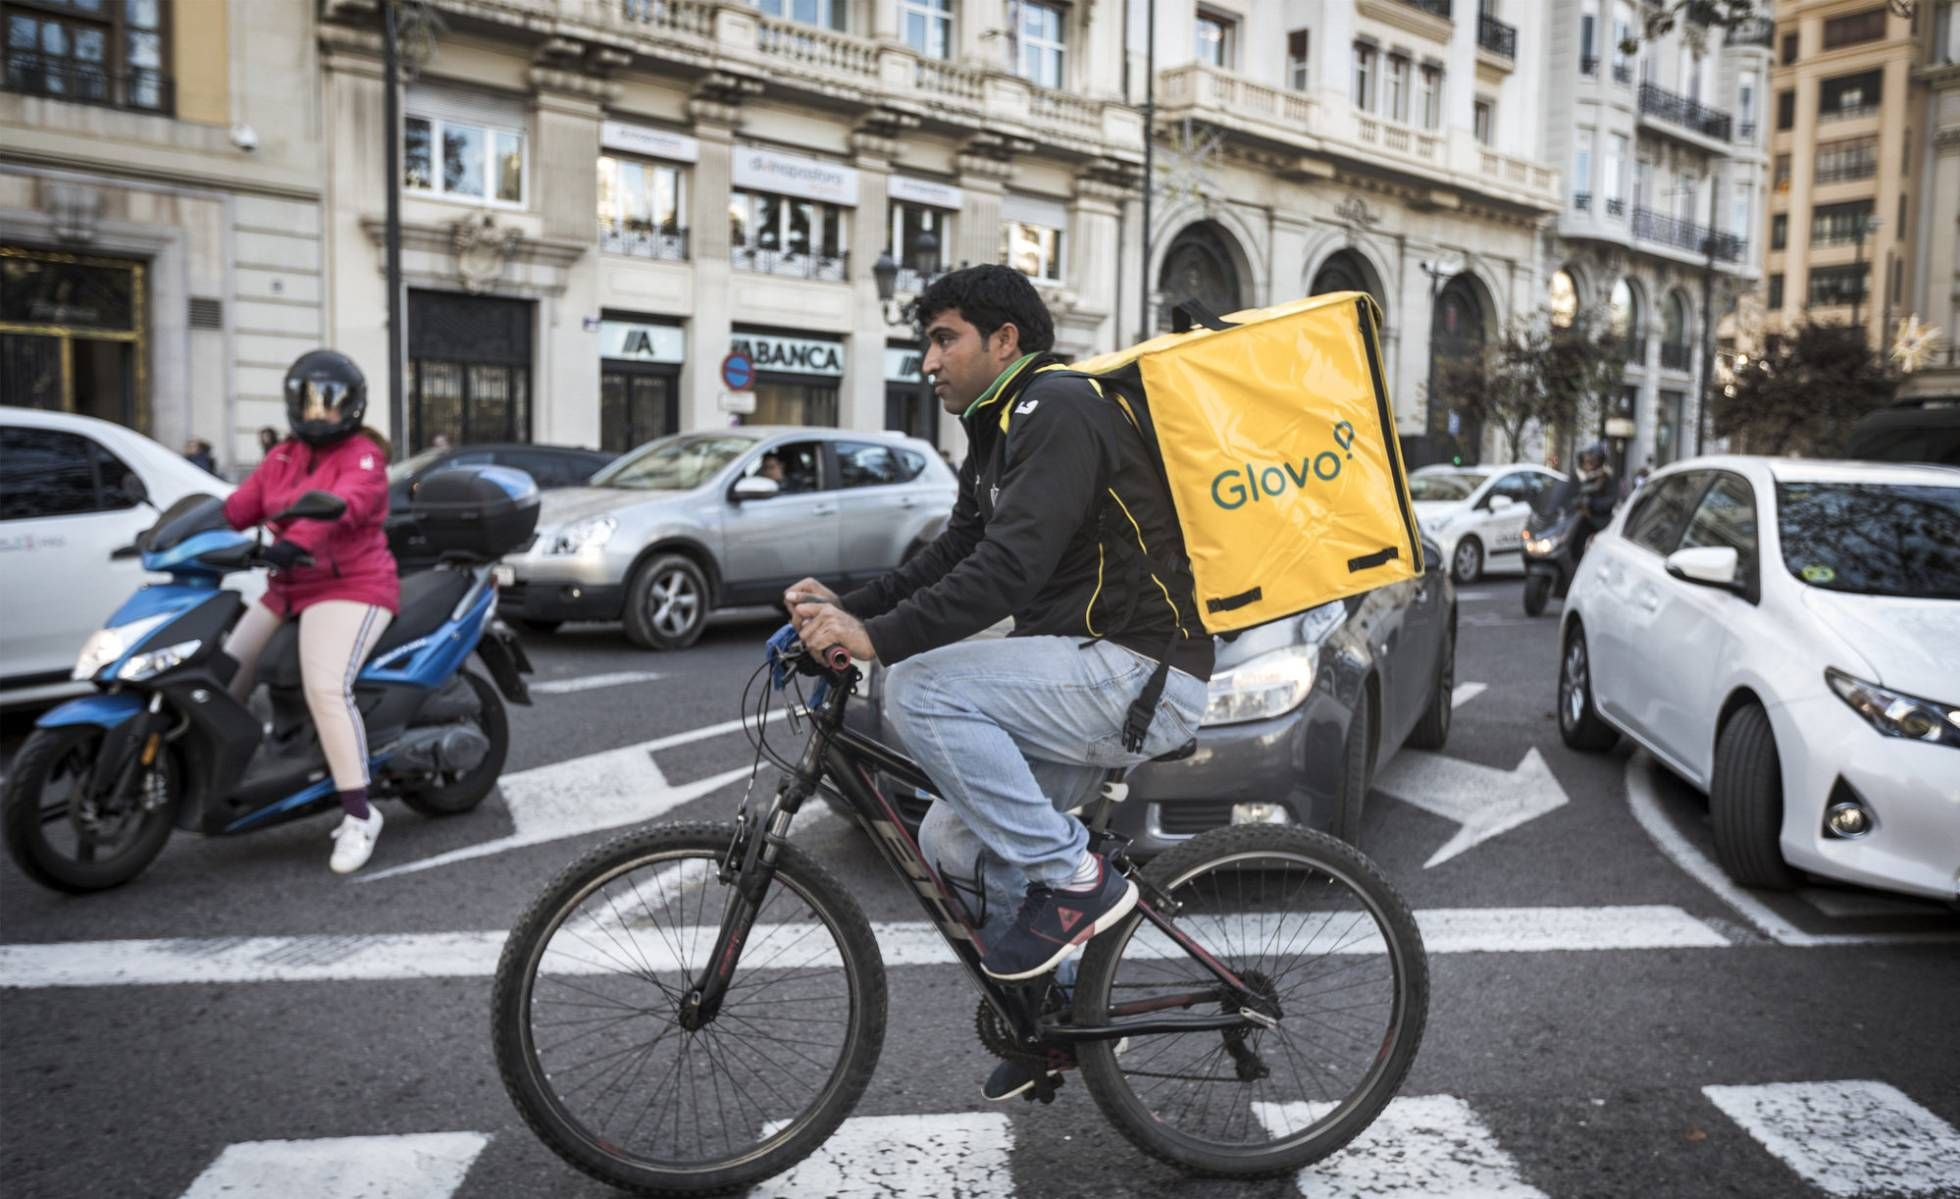 glovo pizza delivery